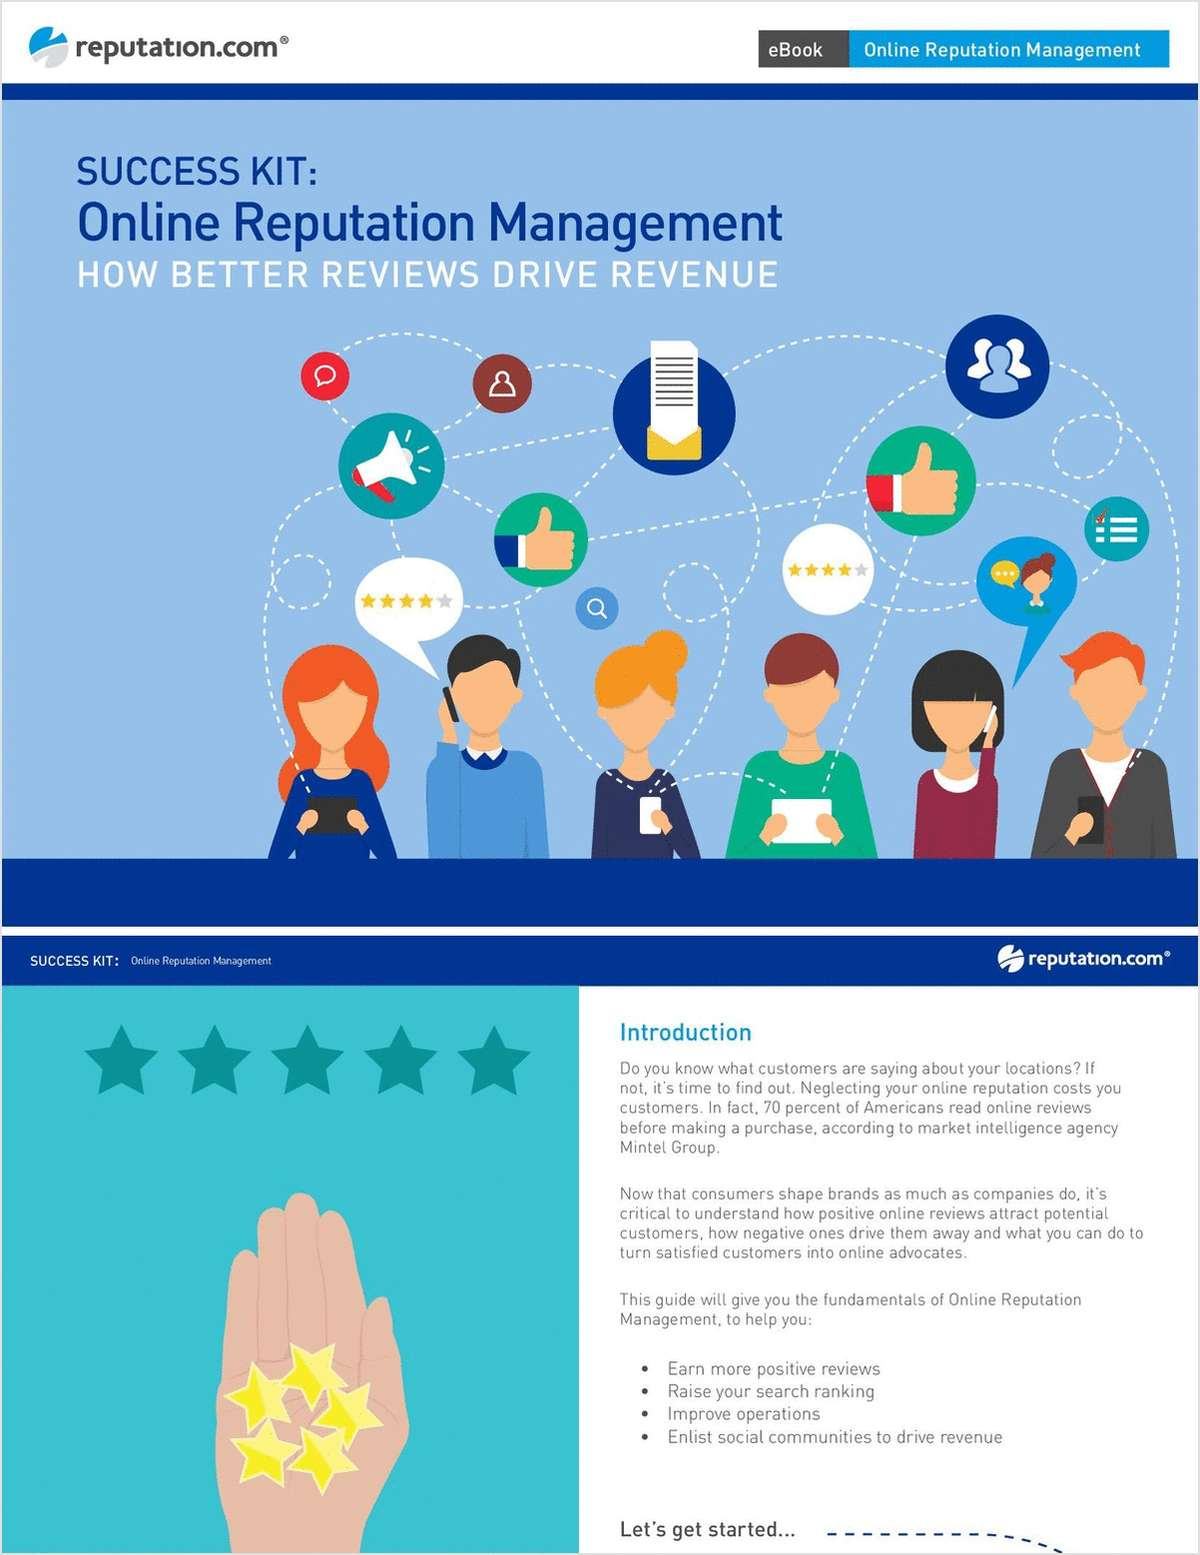 Online Reputation Management: How Better Reviews Drive Revenue